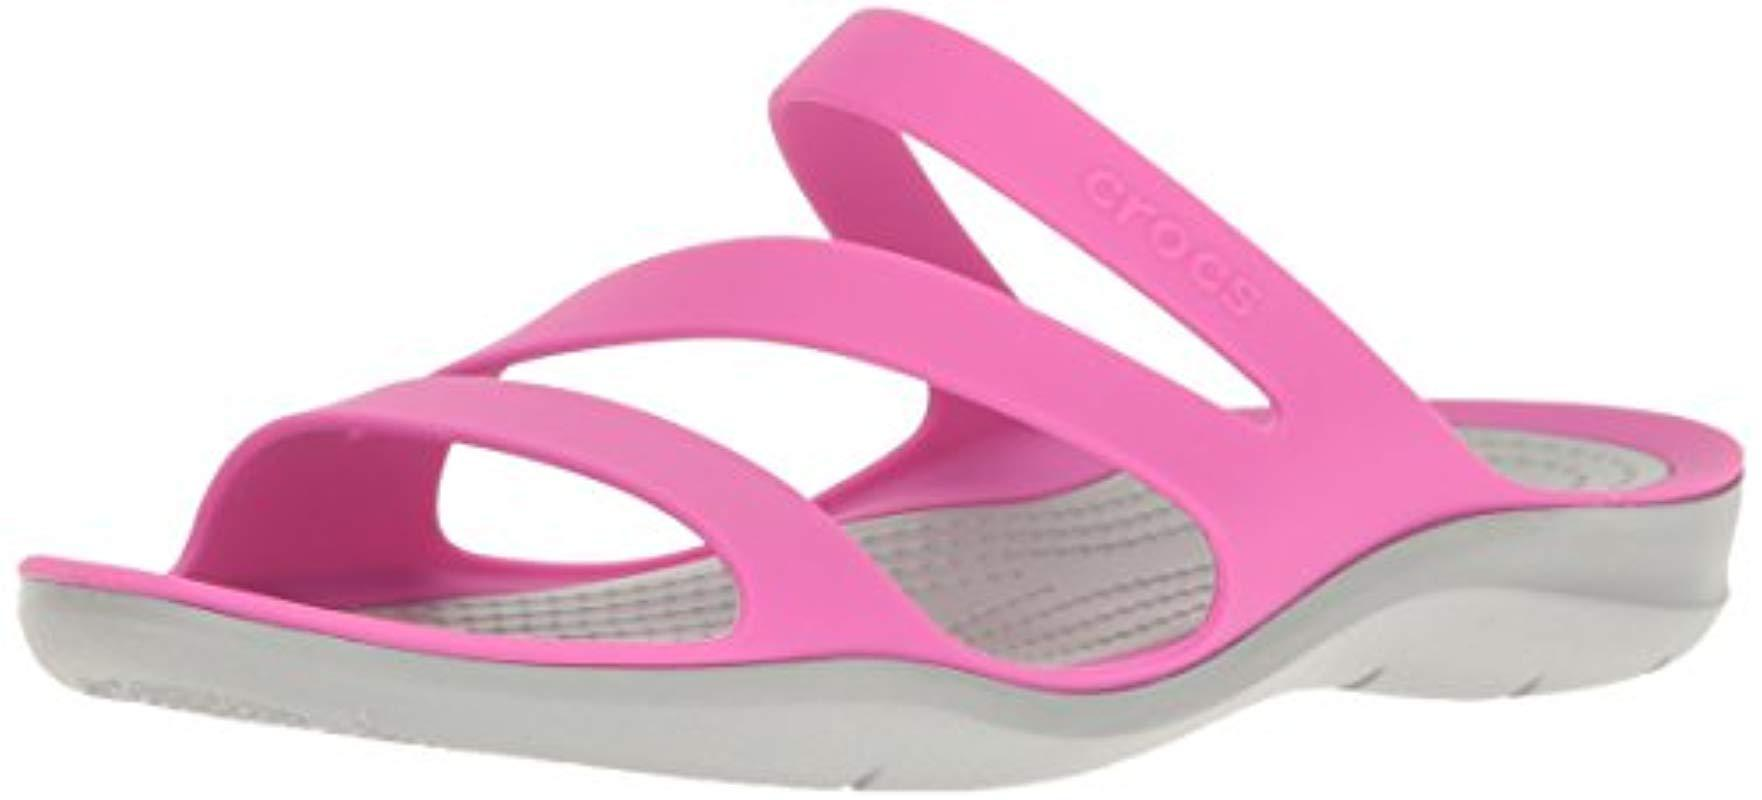 a1601ded277907 Crocs™. Women s Swiftwater Sandal Casual Comfort Slip On Water Or Shower  Shoe ...